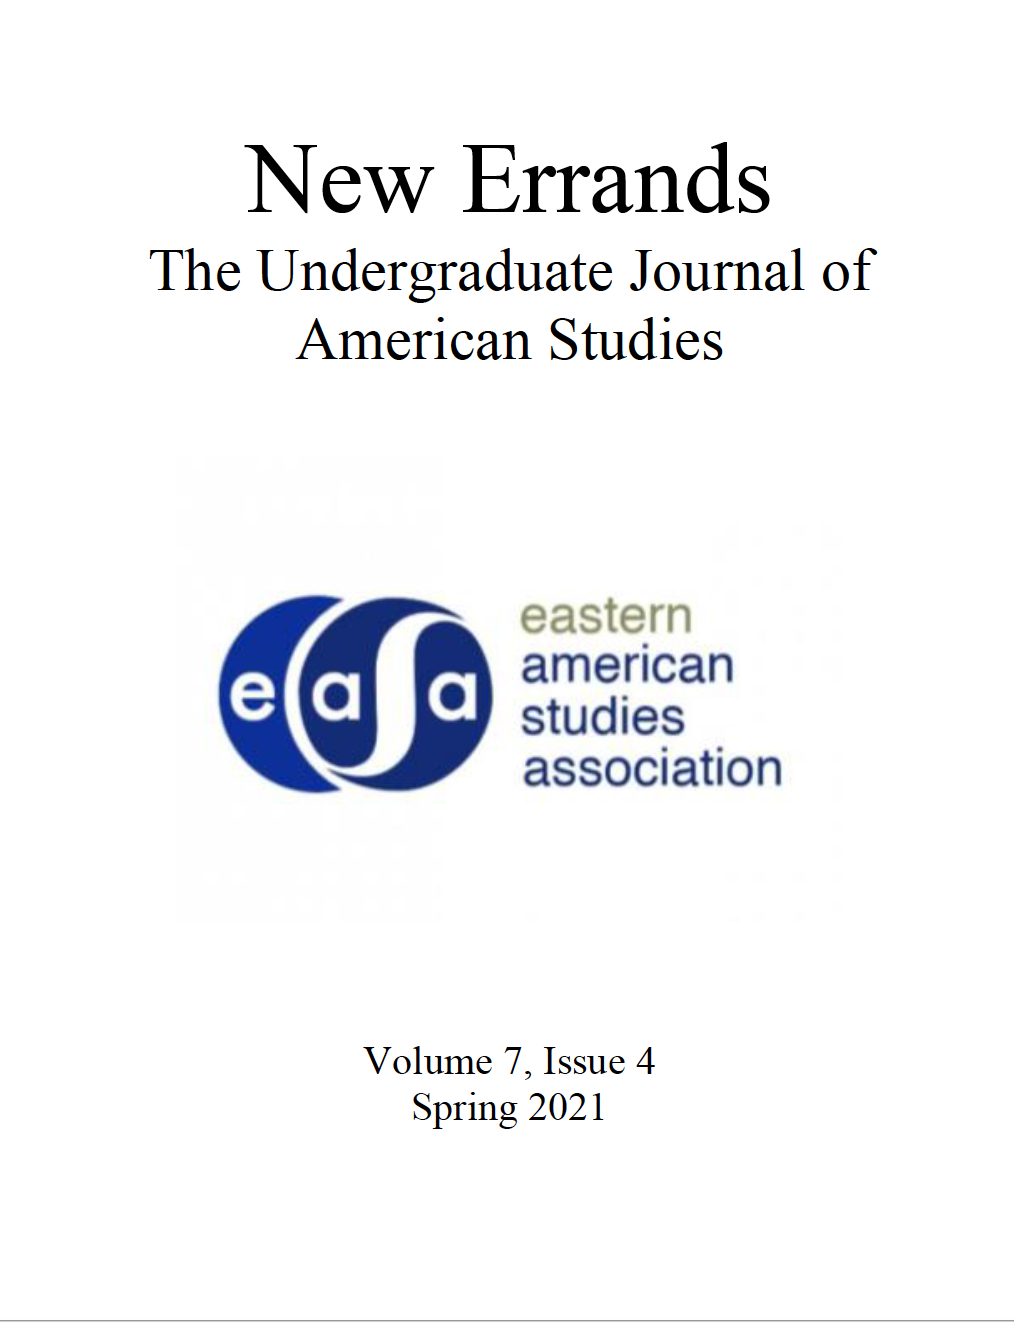 View Vol. 7 No. 4 (2021): New Errands: Spring 2021, Volume 7, Issue 4